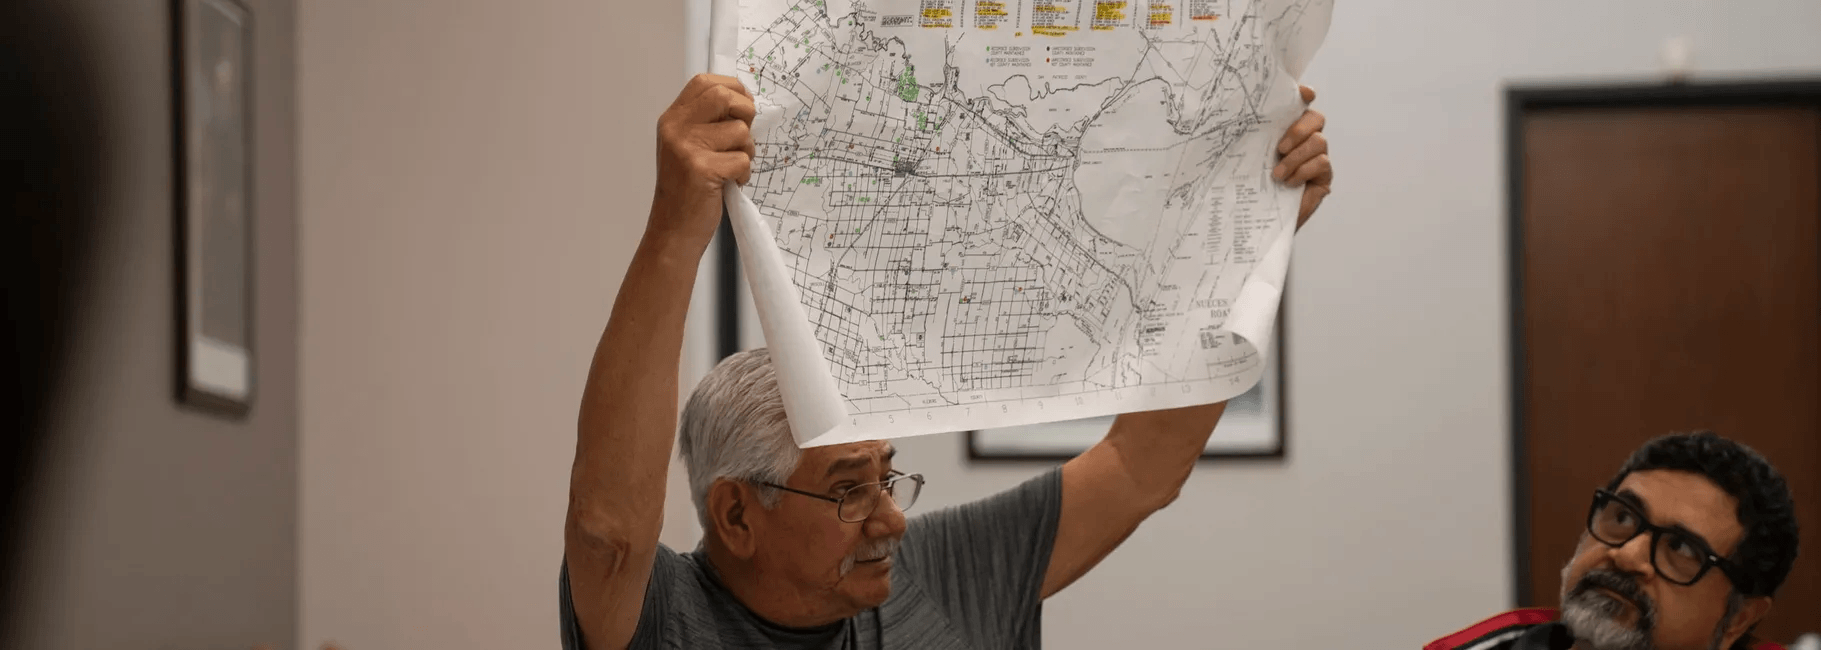 Man holding a map in the area.